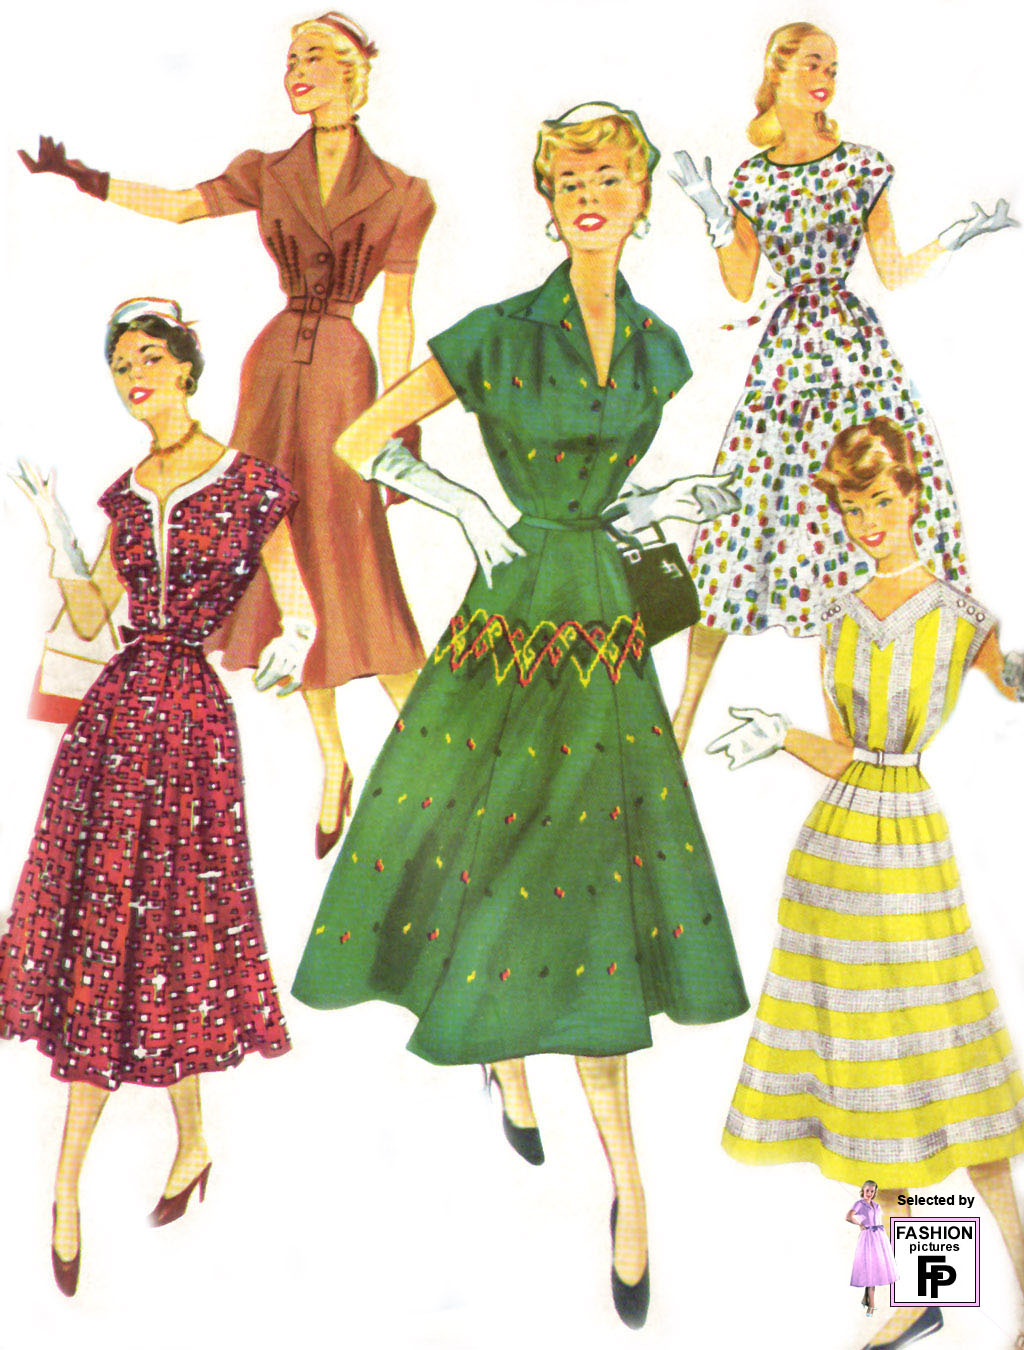 1950s fashion. Page 1 - Fashion Pictures